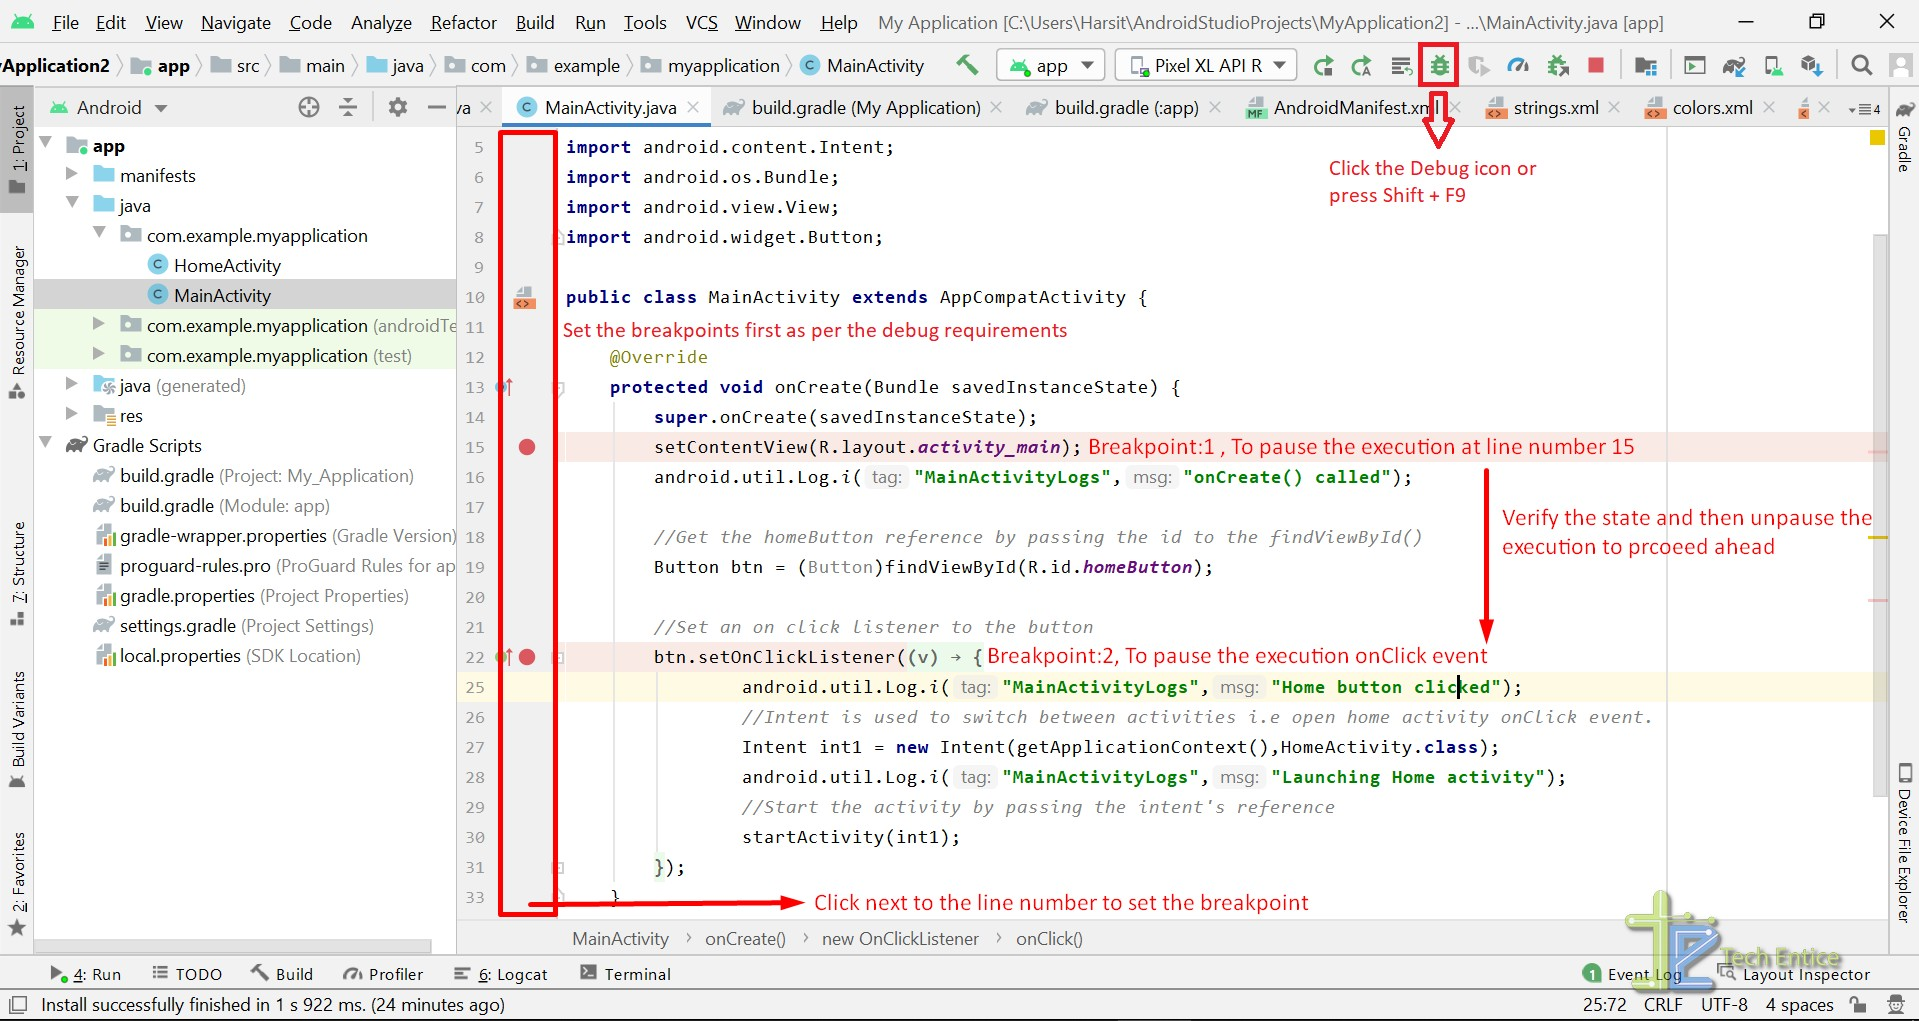 Explore Gradle, ADB Debug Tool, Logcat, Lint Tool In Android Studio On Windows 10